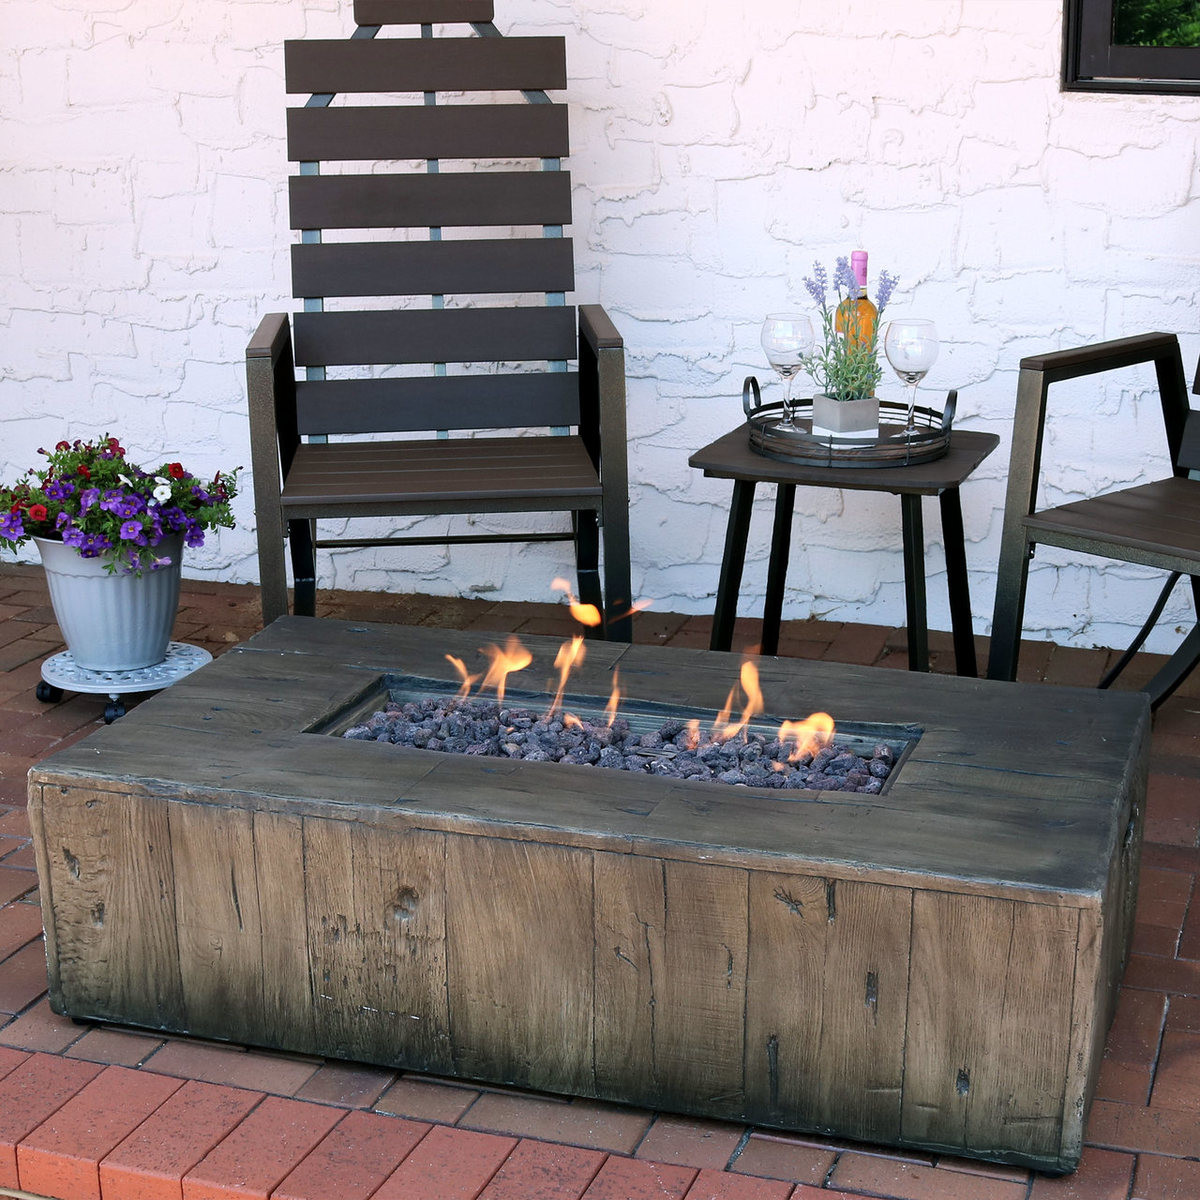 Propane Fire Pit Coffee Table  Sunnydaze 48 Inch Rustic Faux Wood Outdoor Propane Gas